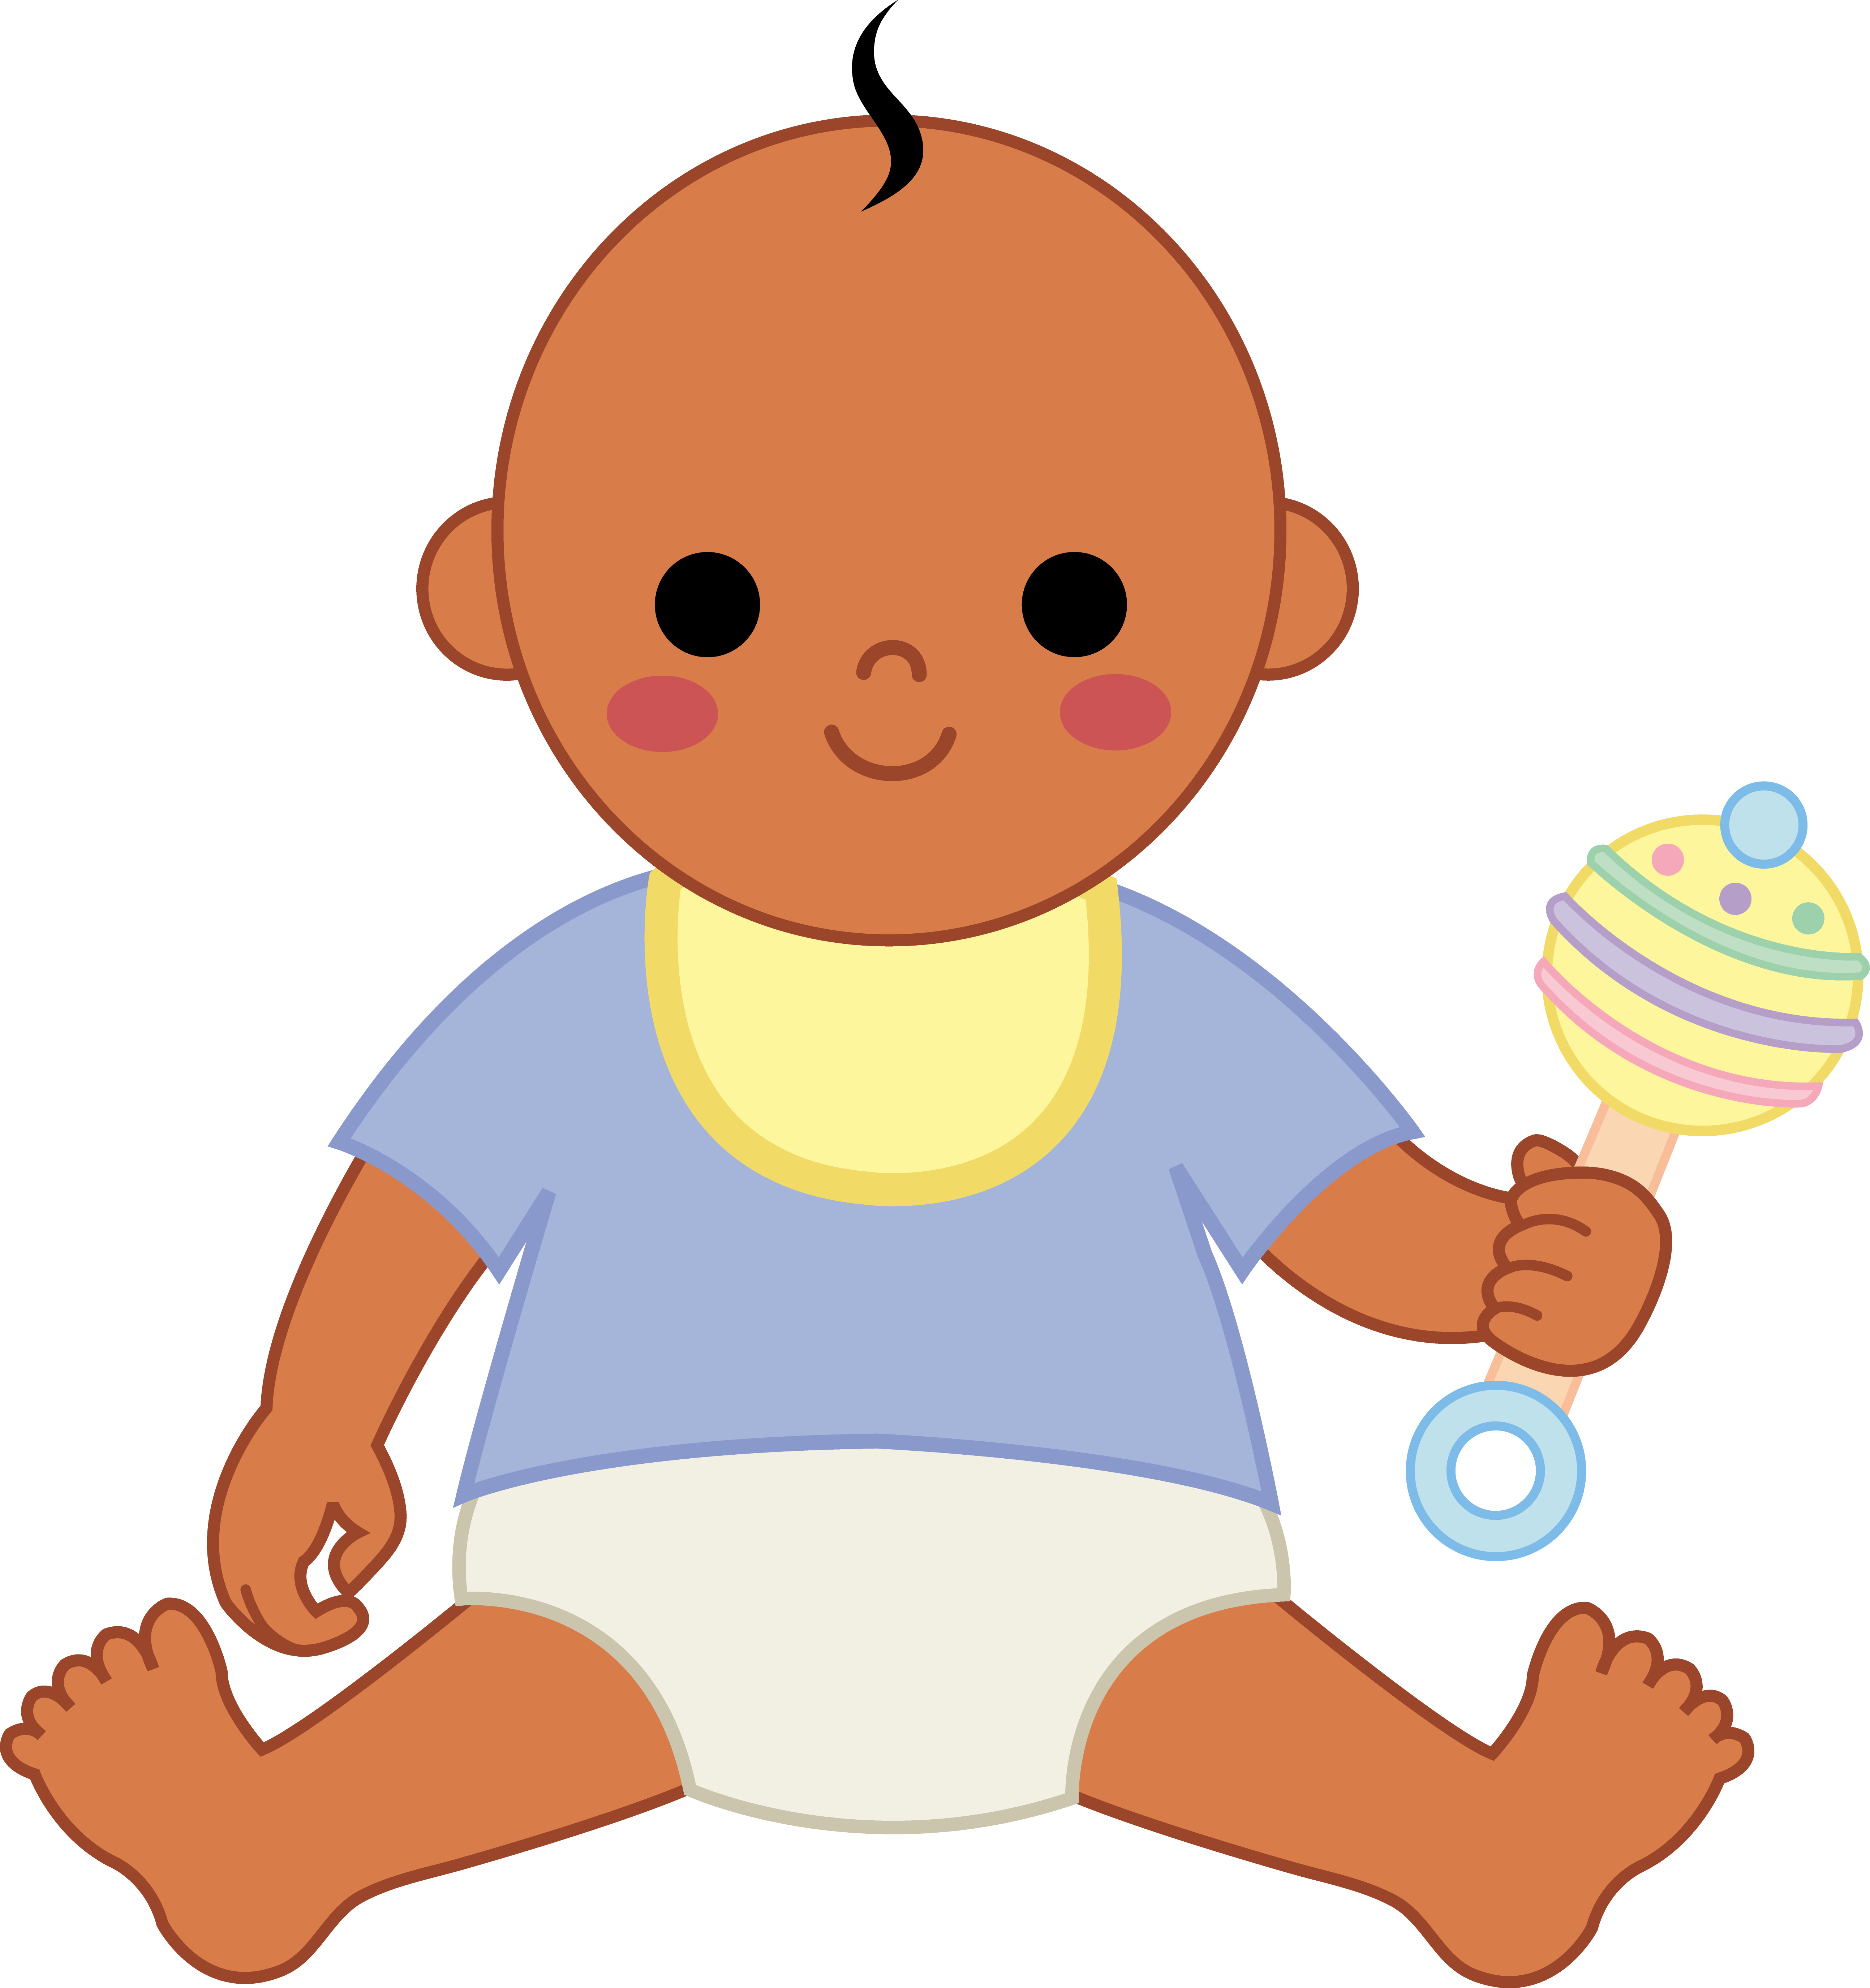 Little Boy clipart cute On Cute Baby Clipart Clipart